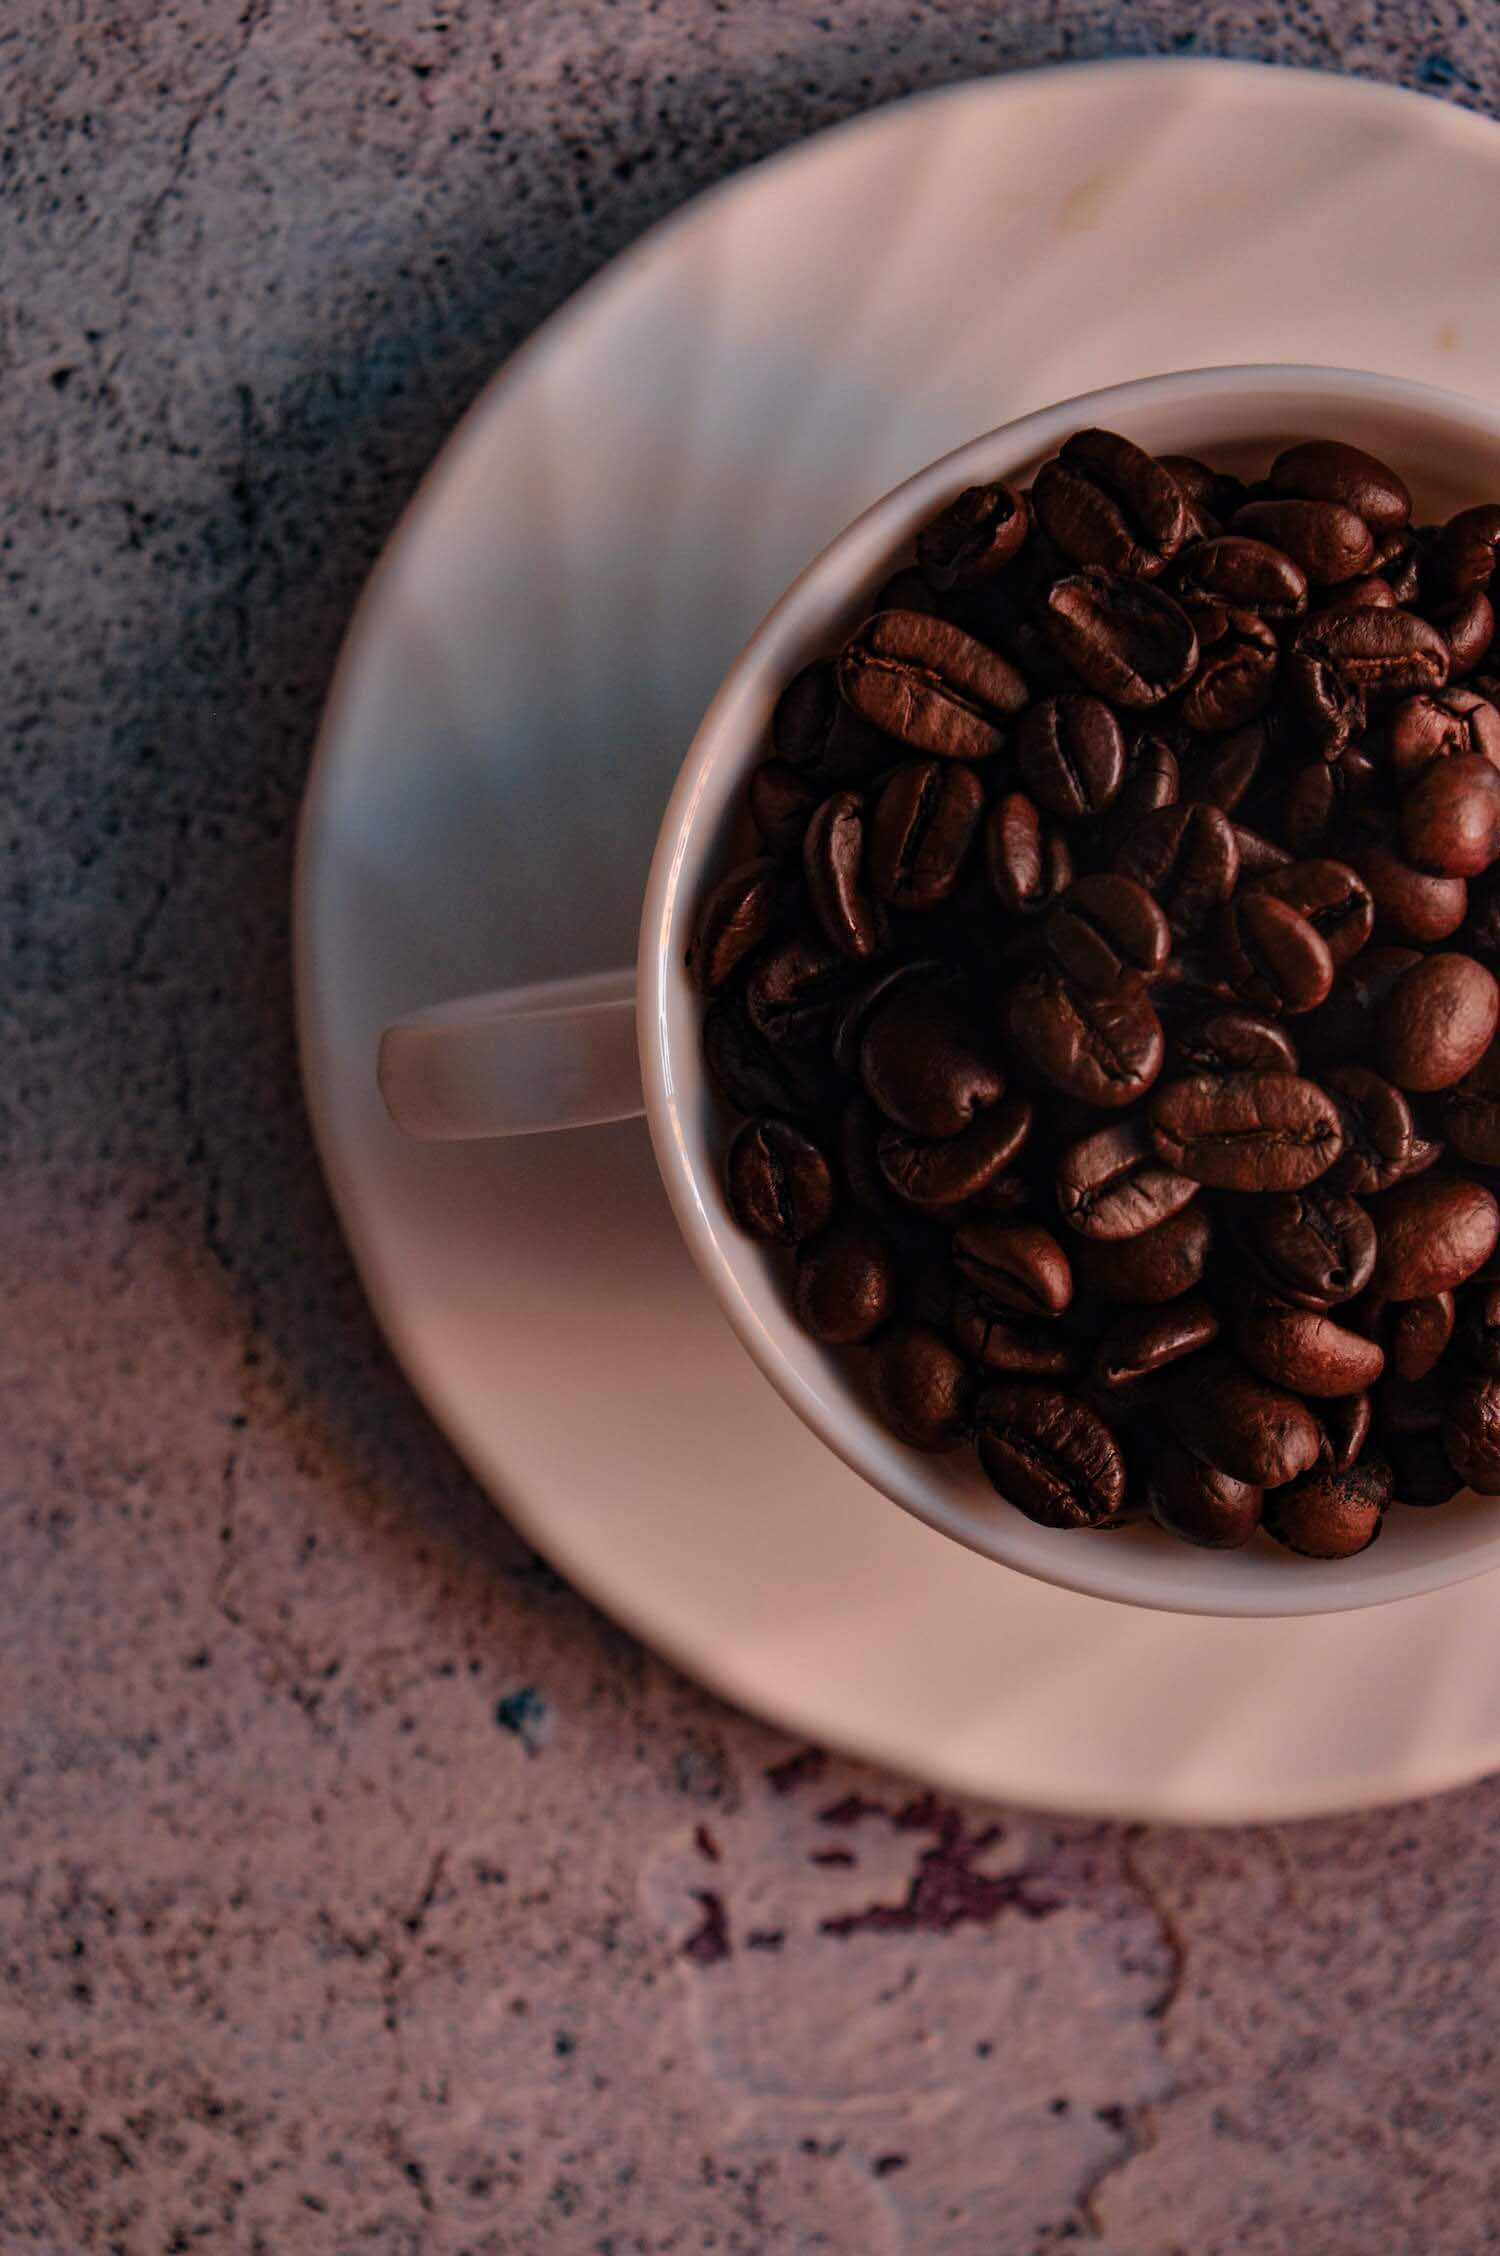 TCE-COFFEE-IMAGES-890